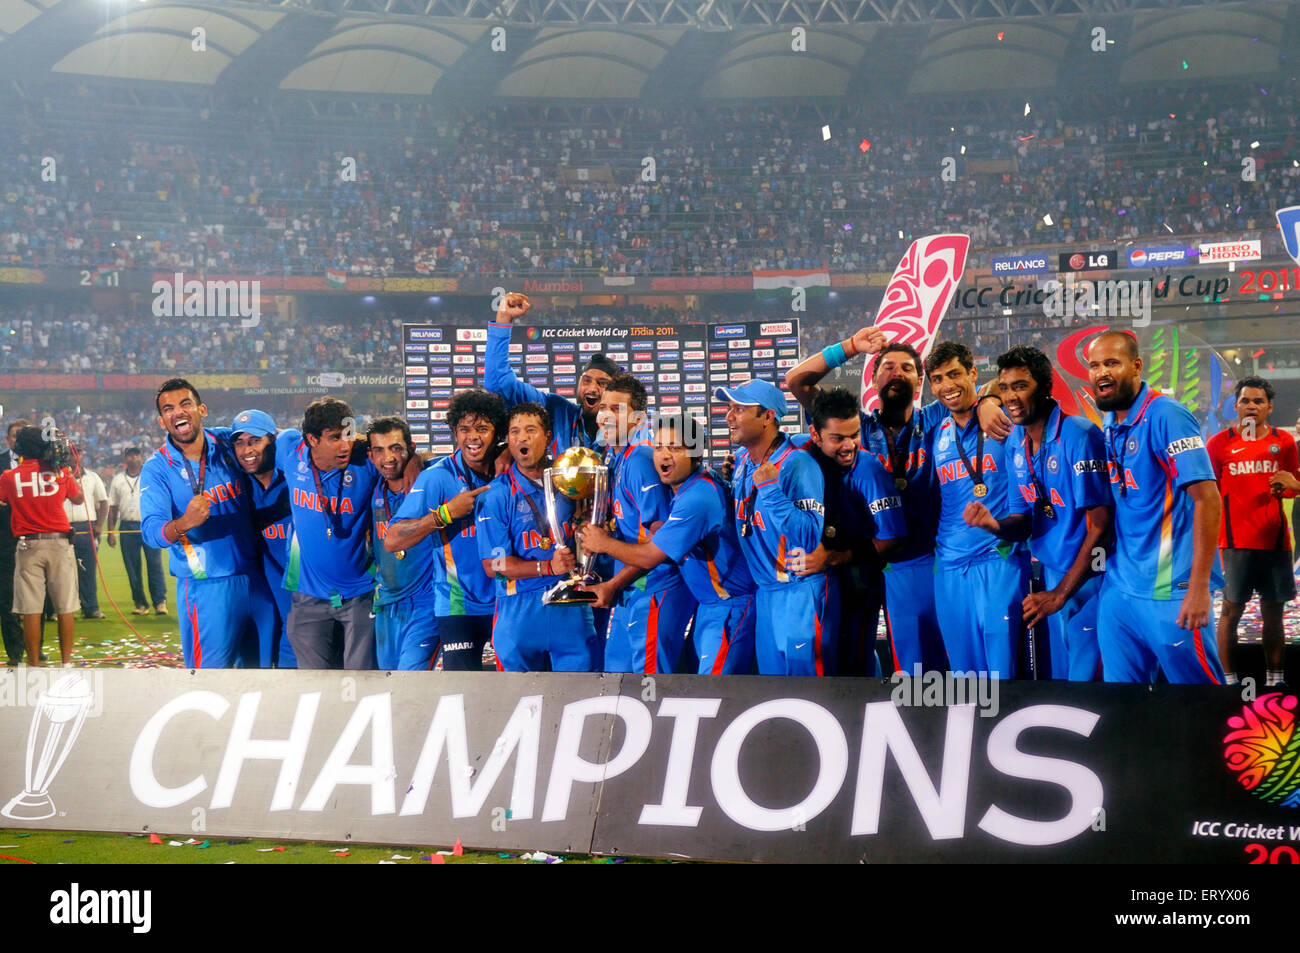 Cricketers Celebrate Trophy Beating Sri Lanka Icc Cricket